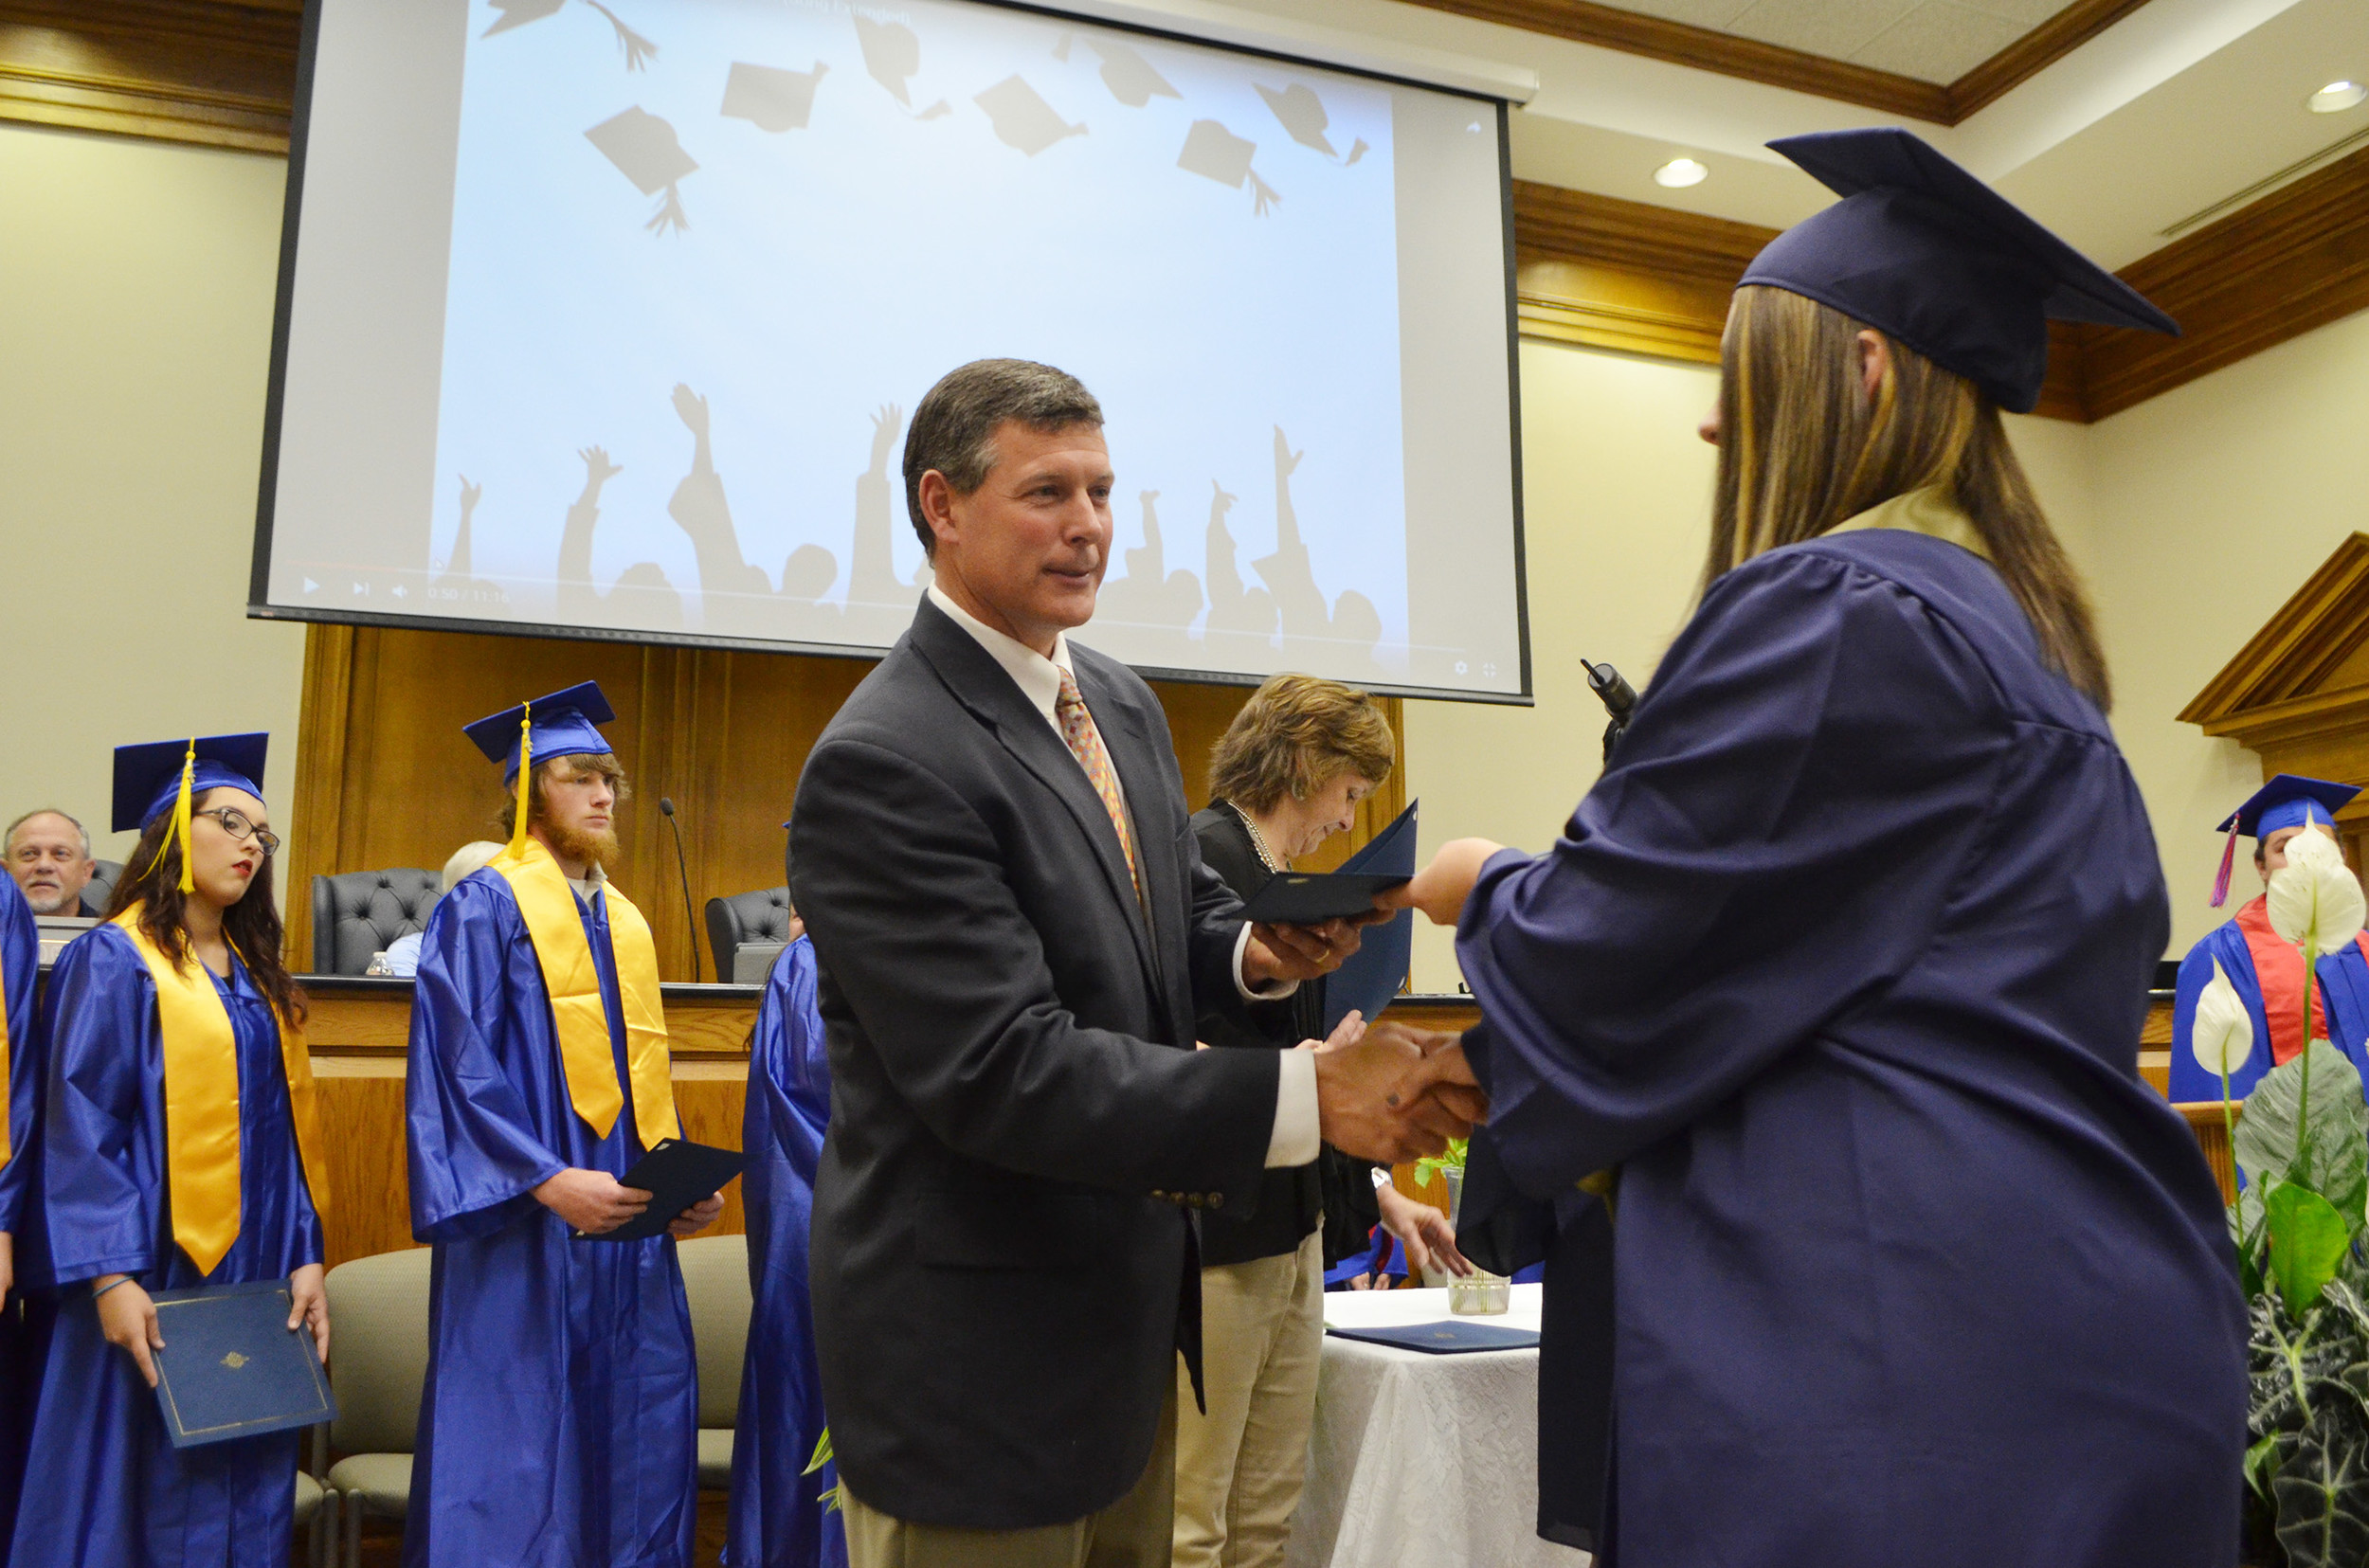 Walker County Schools Superintendent Dr. Jason Adkins presents a diploma to one of the graduates of Twilight Knight School on Thursday evening.  Daily Mountain Eagle - Nicole Smith